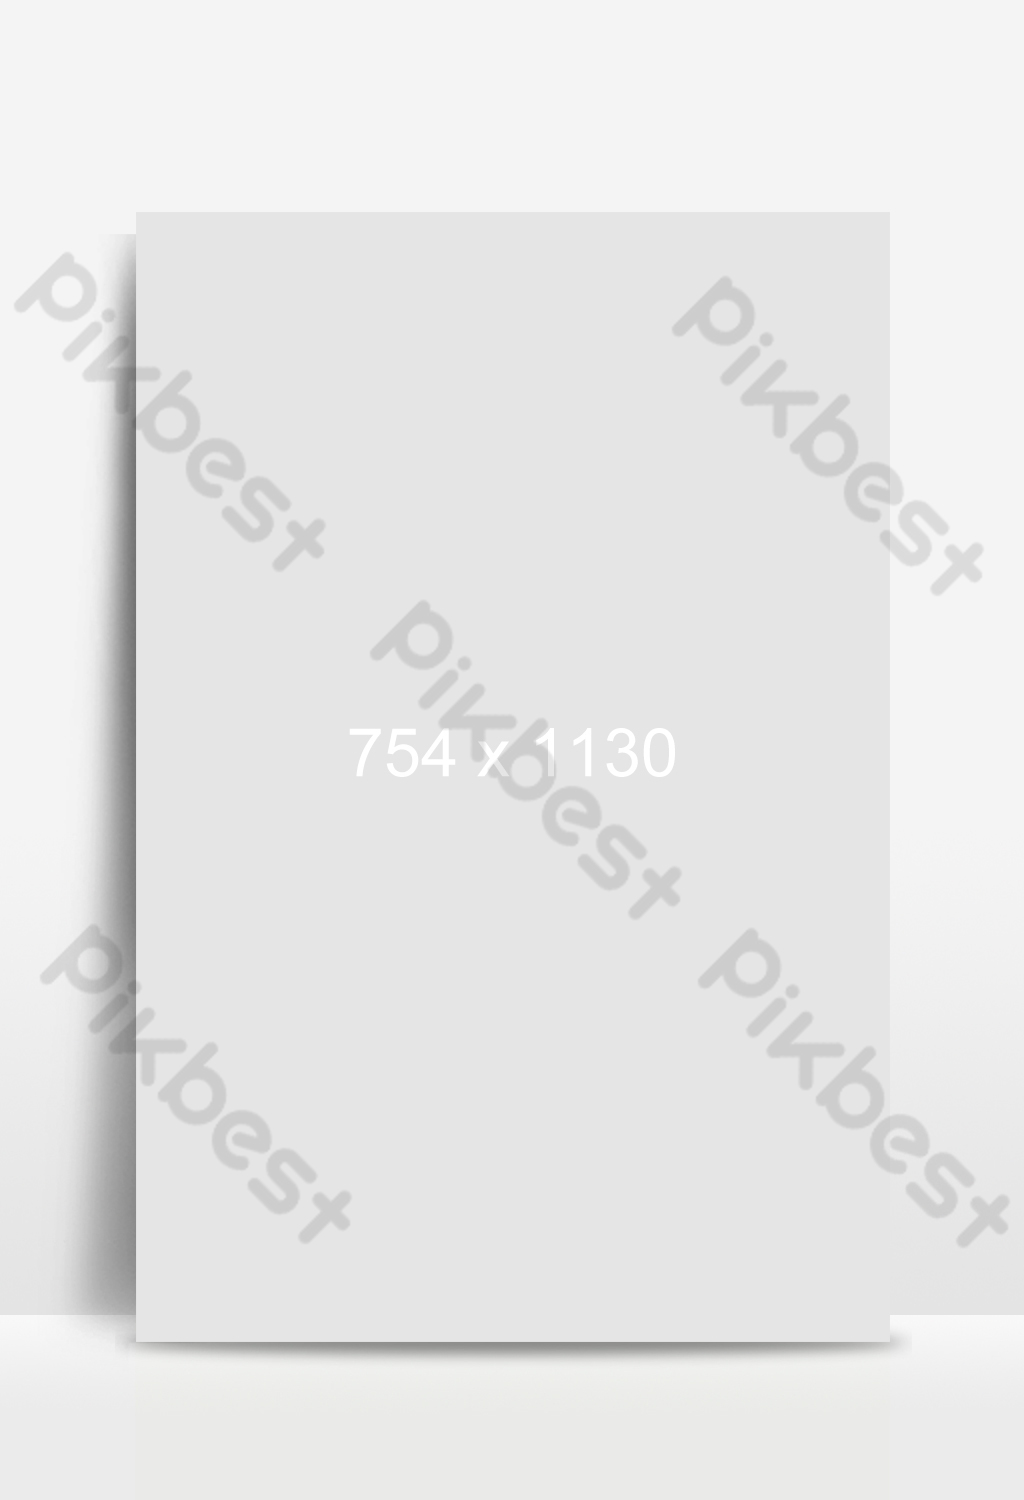 Black And White Ancient Style Traditional Character Taekwondo Martial Arts Background Image Backgrounds Psd Free Download Pikbest